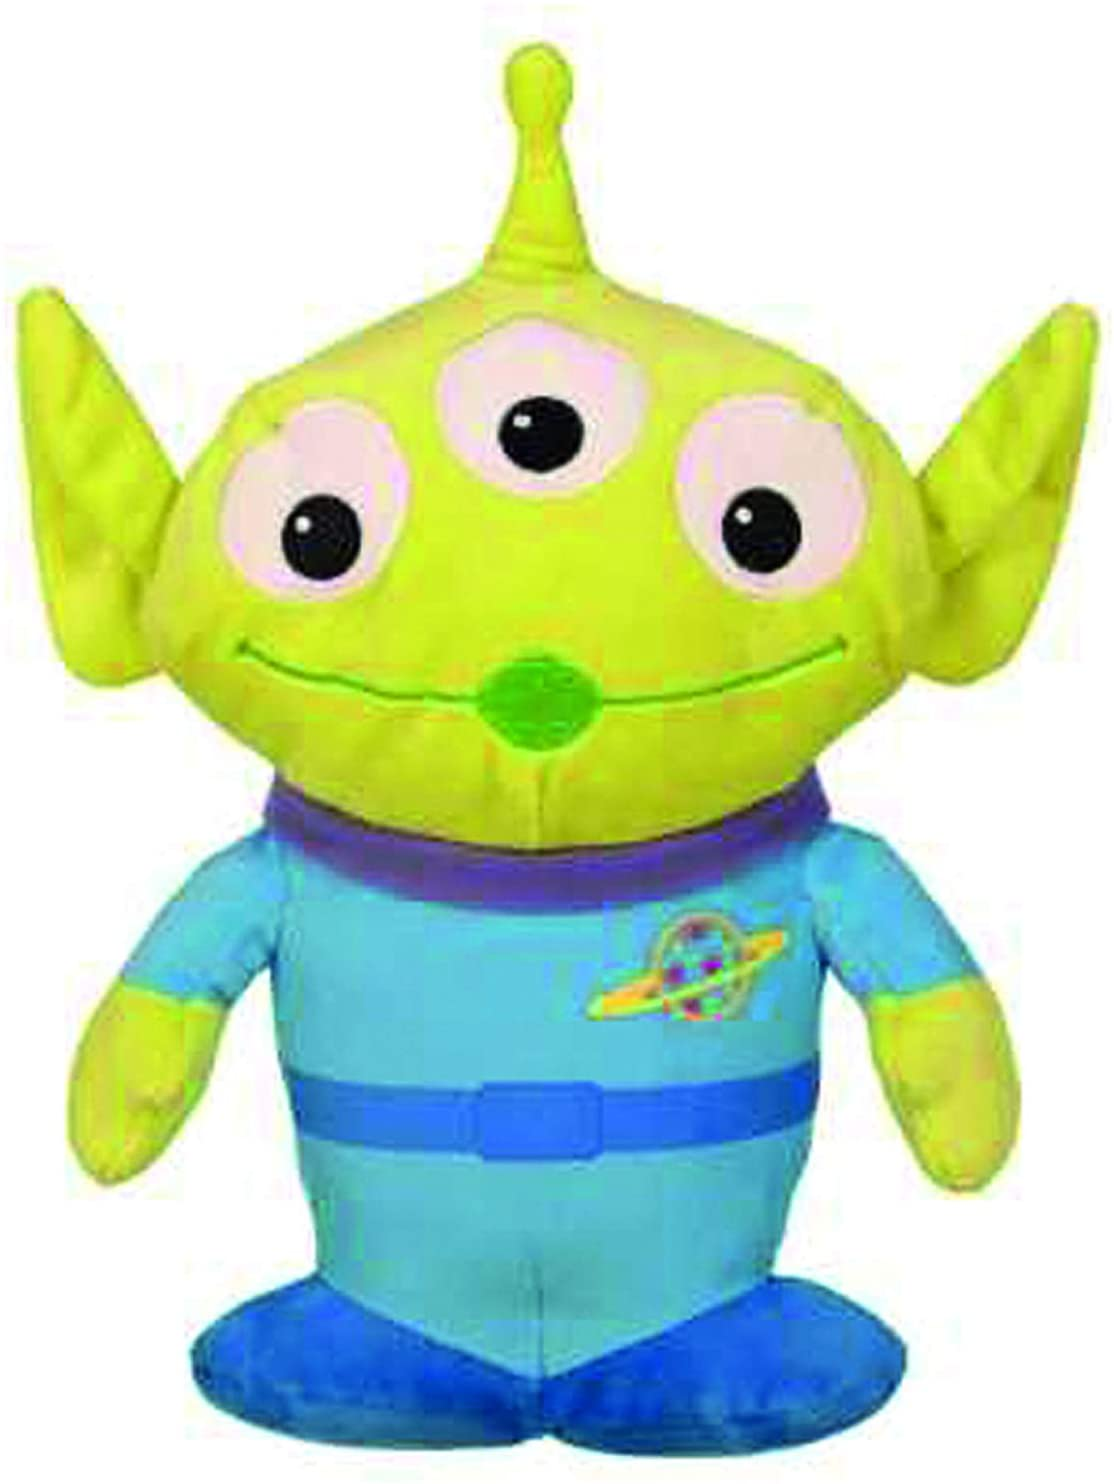 Chunky Alien Plush Soft Toy